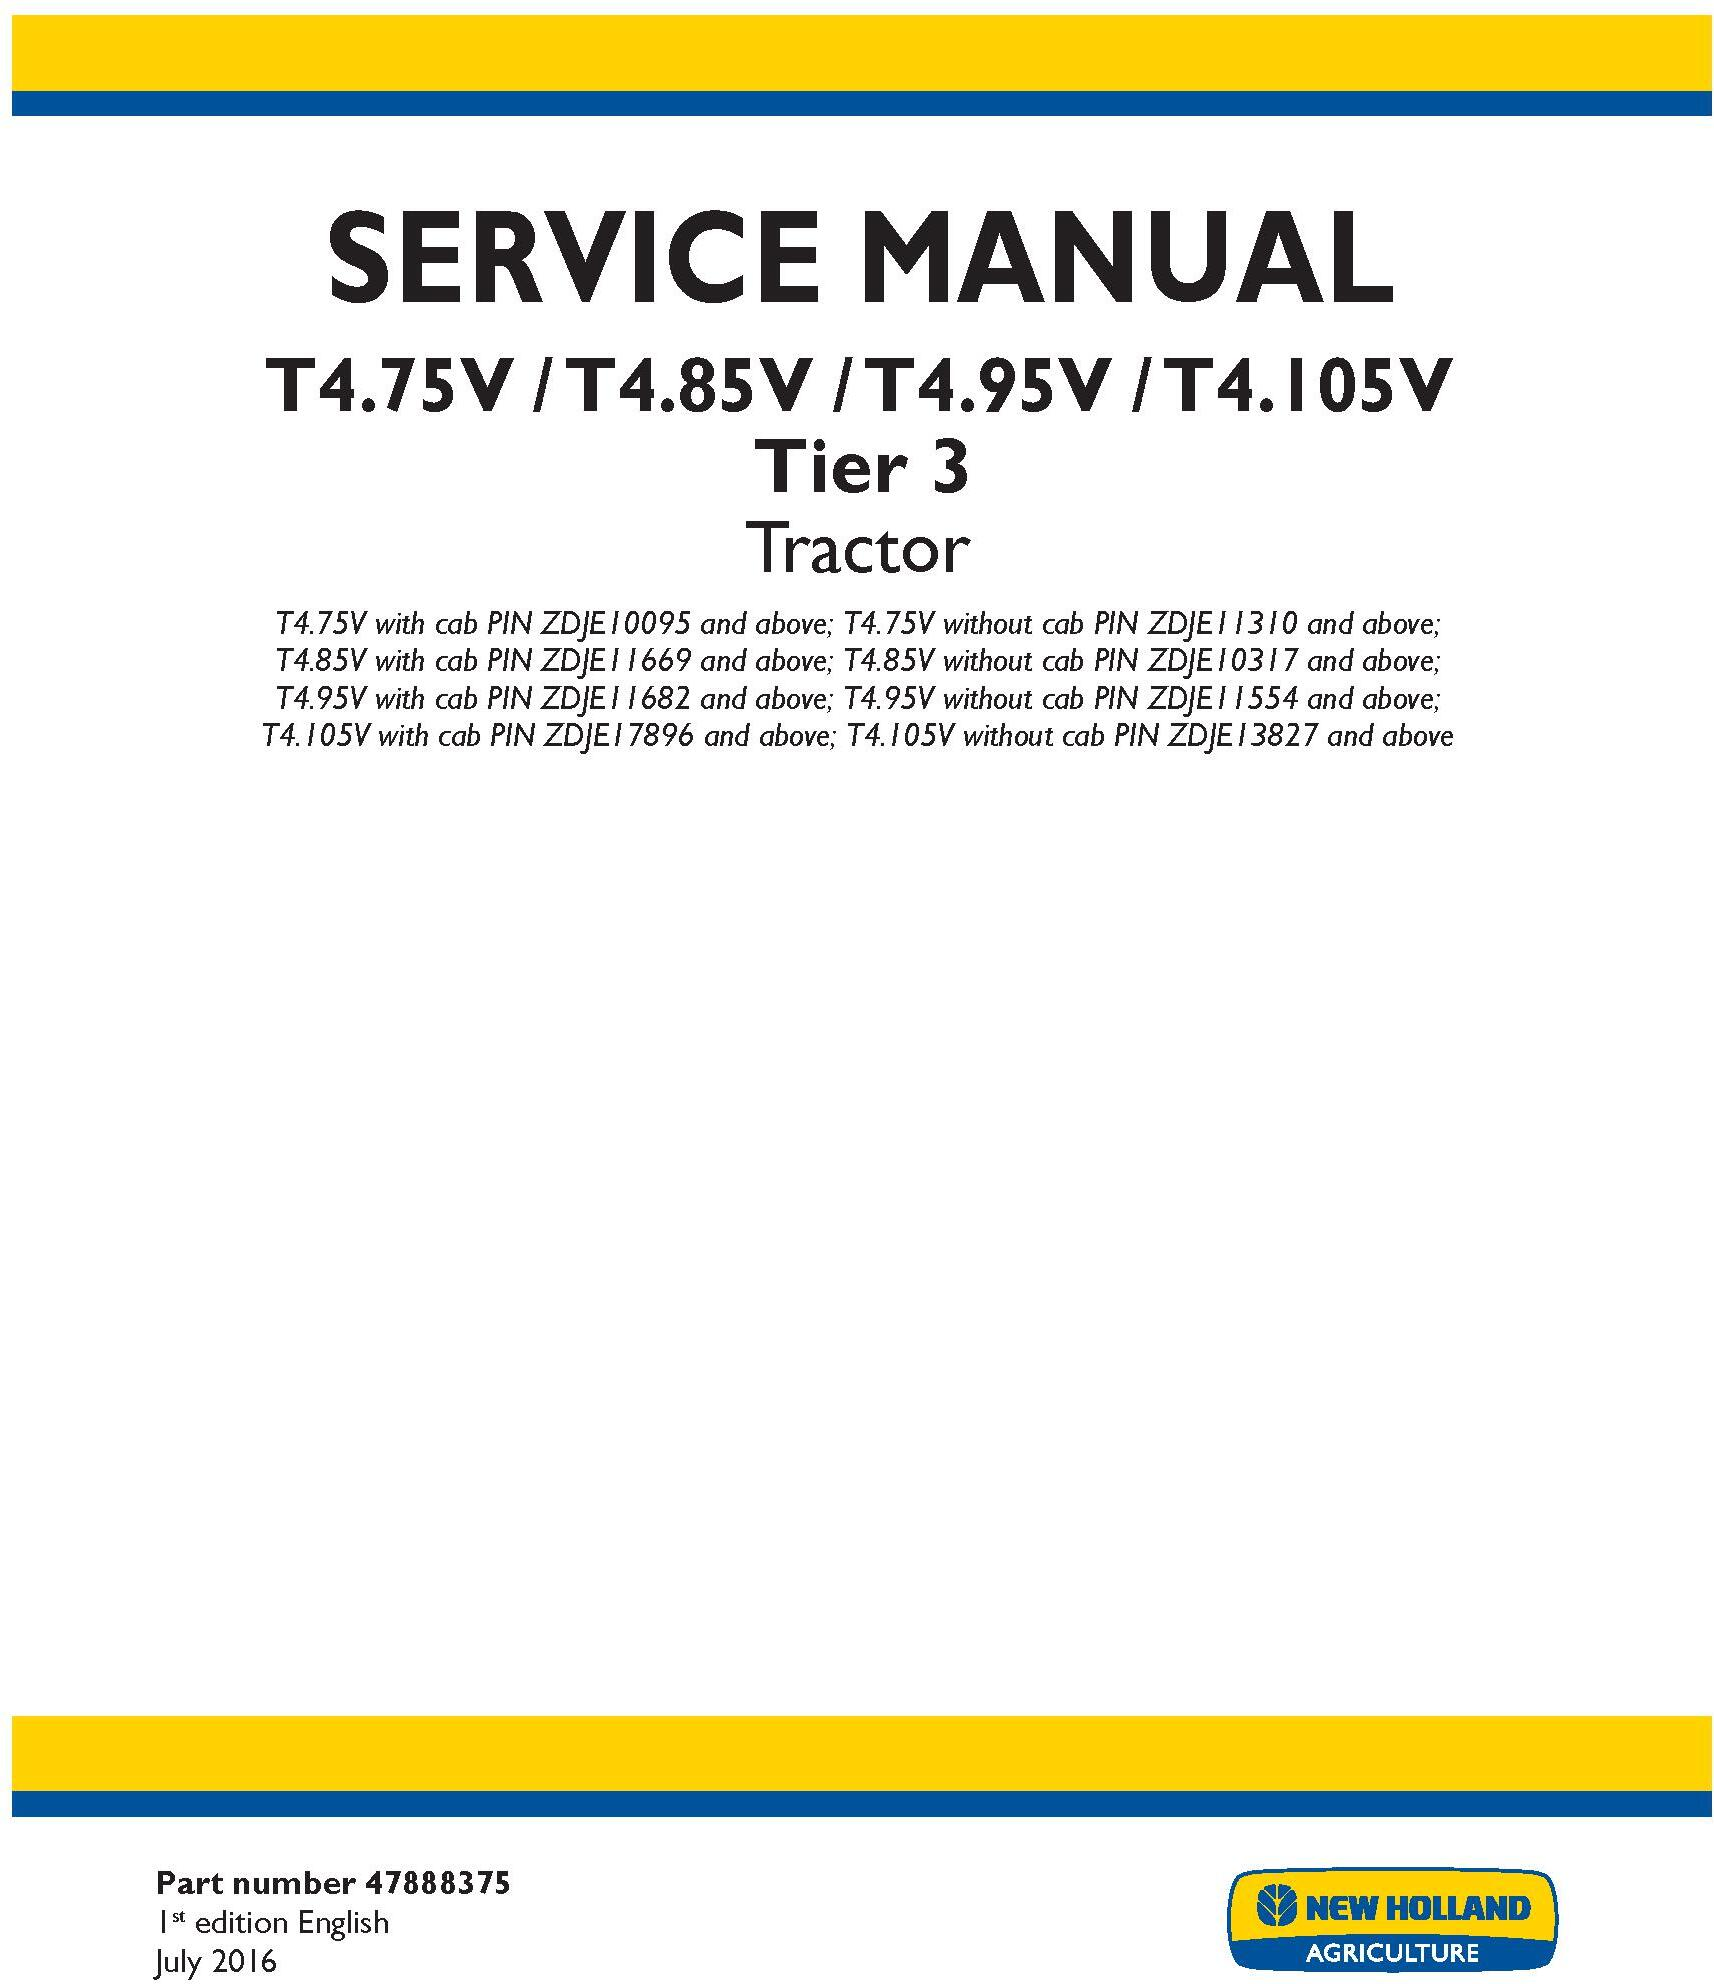 New Holland T4.75V, T4.85V, T4.95V, T4.105V Tier 3 Tractor Complete Service Manual (North America) - 19443